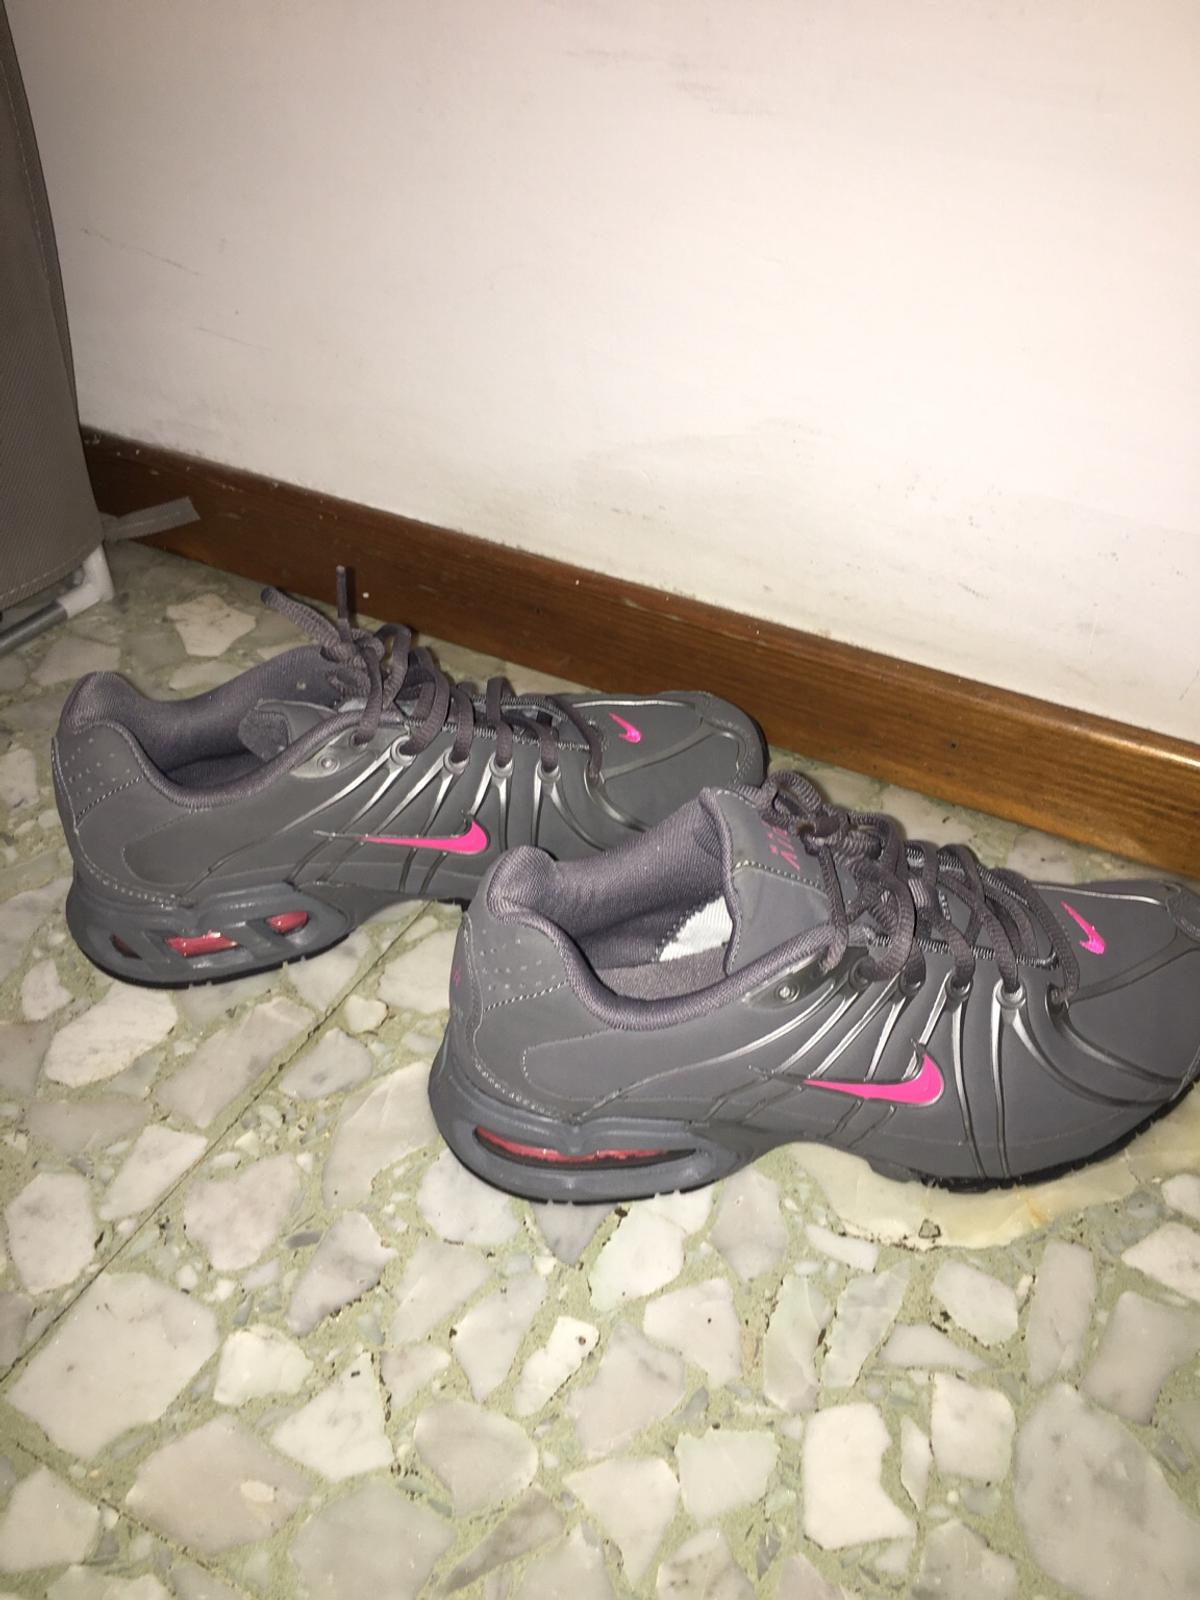 Scarpe Nike Air Max in 00166 Roma for €35.00 for sale | Shpock